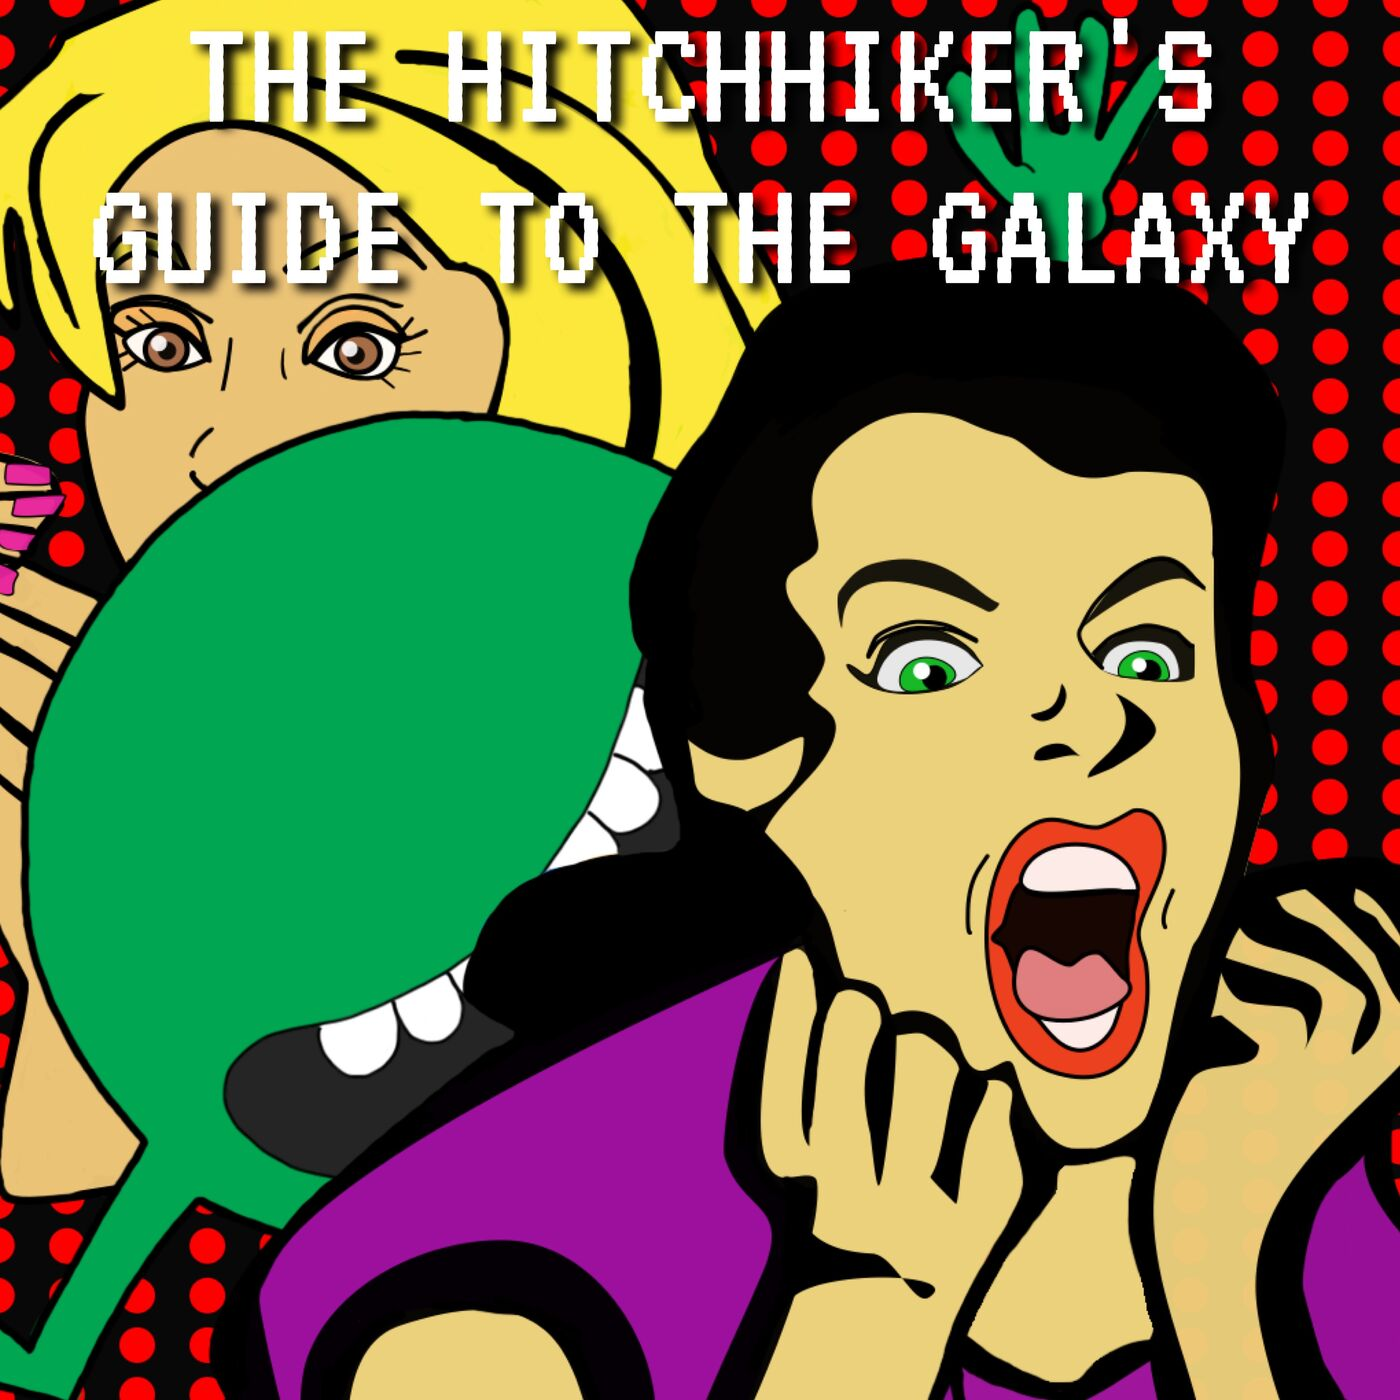 Shocked Talk: The Hitchhiker's Guide to the Galaxy